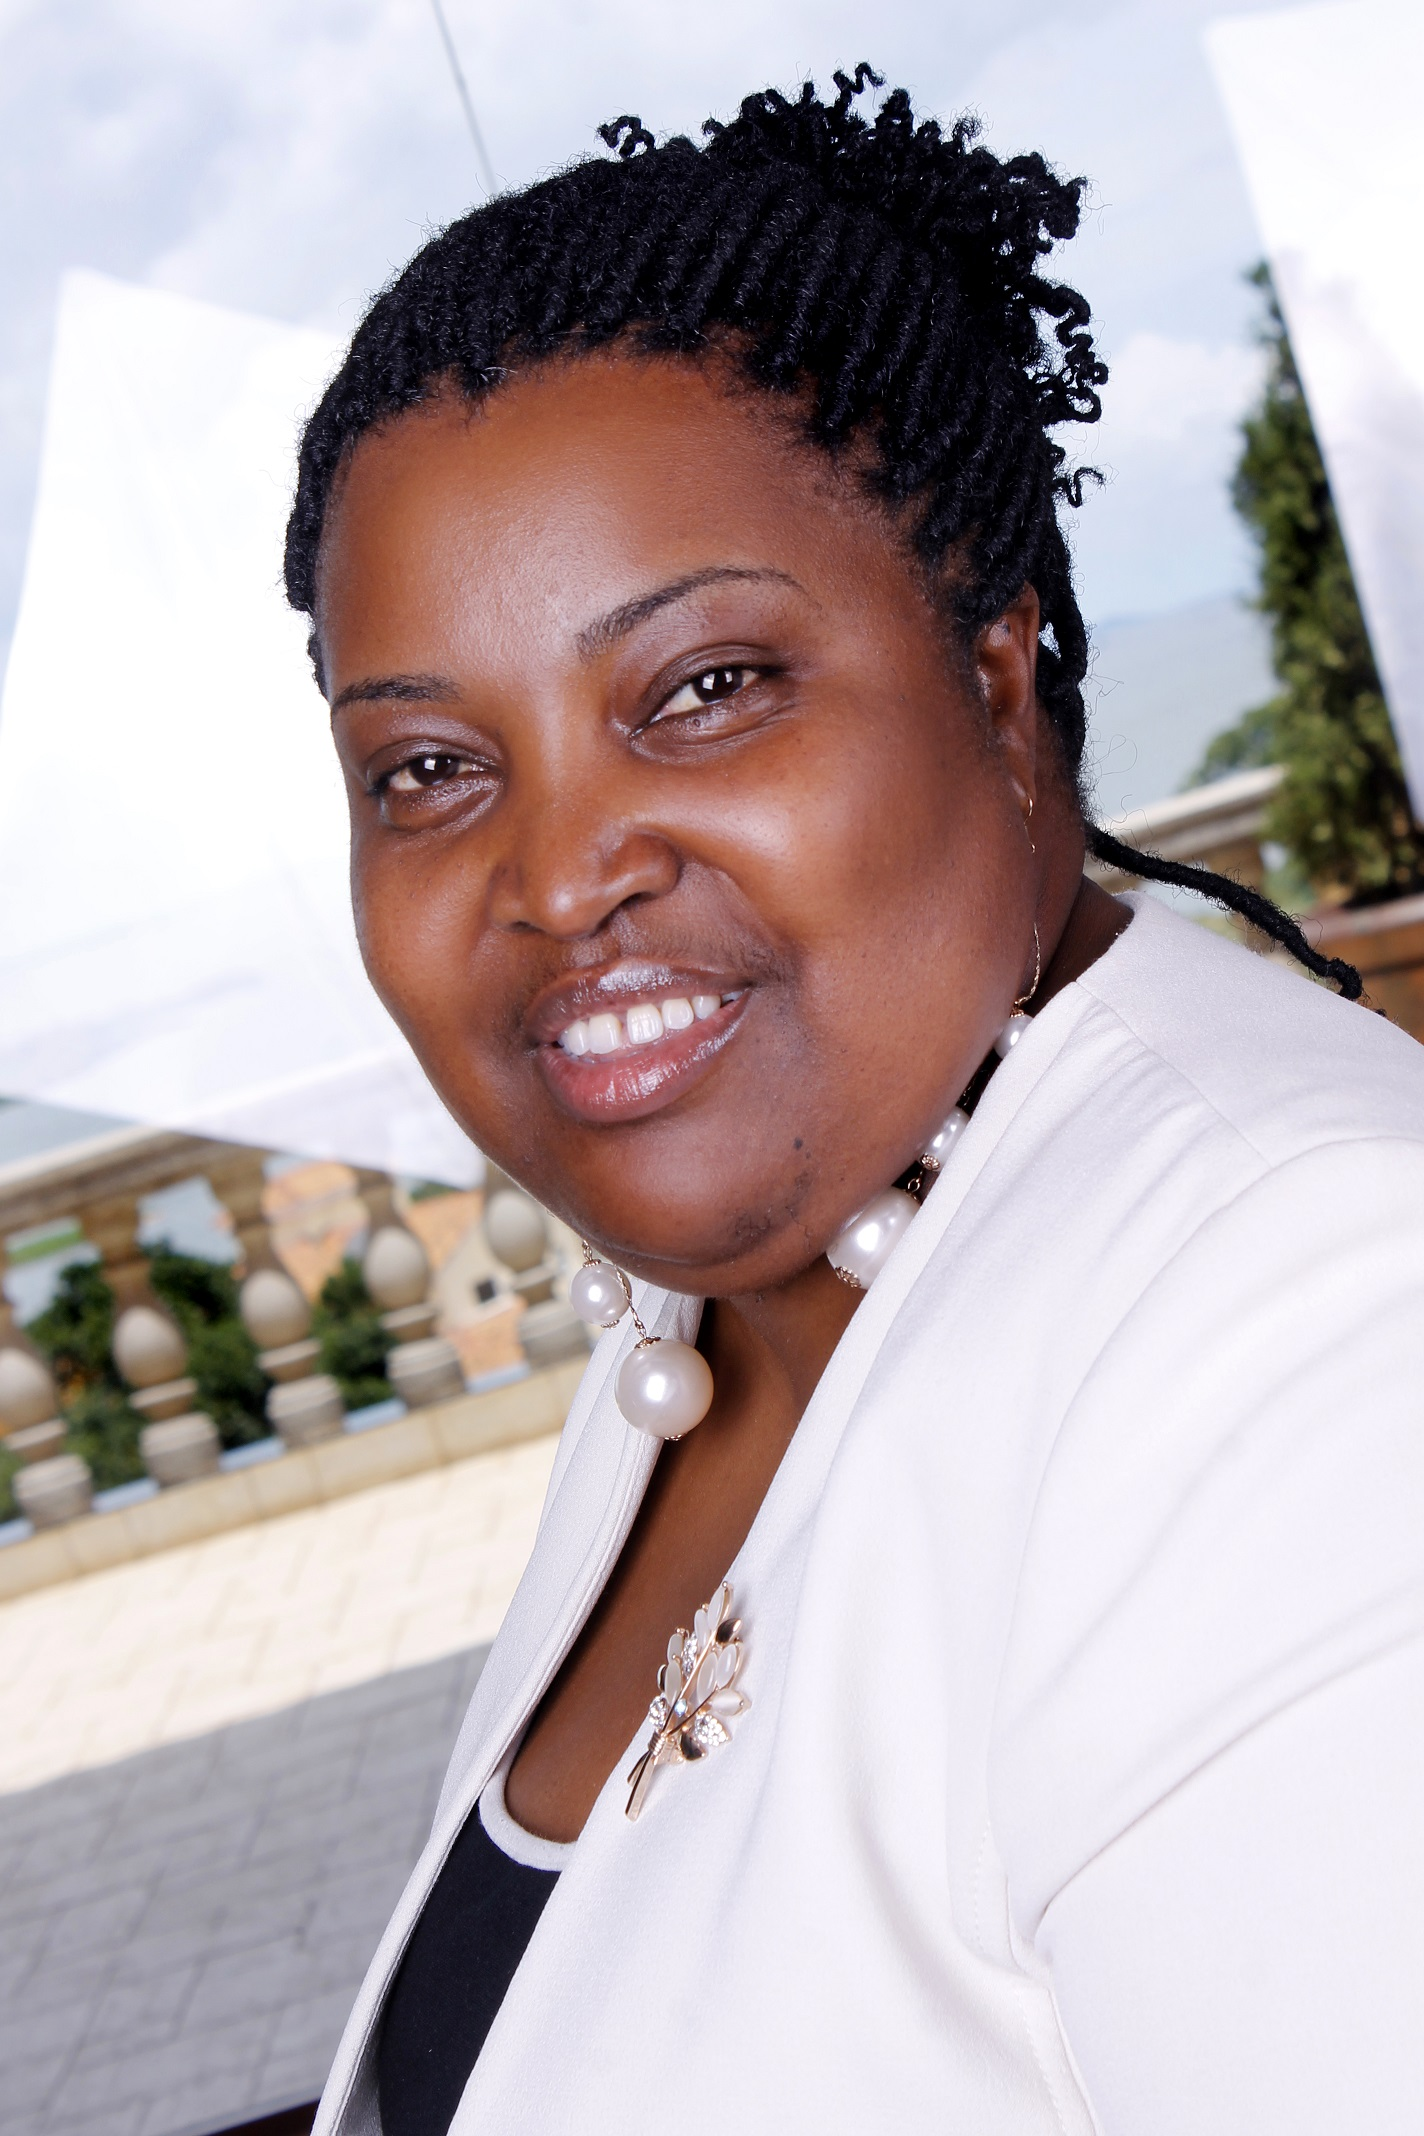 JUDITH OWEMBABAZI (Head of Marketing and Product Development)